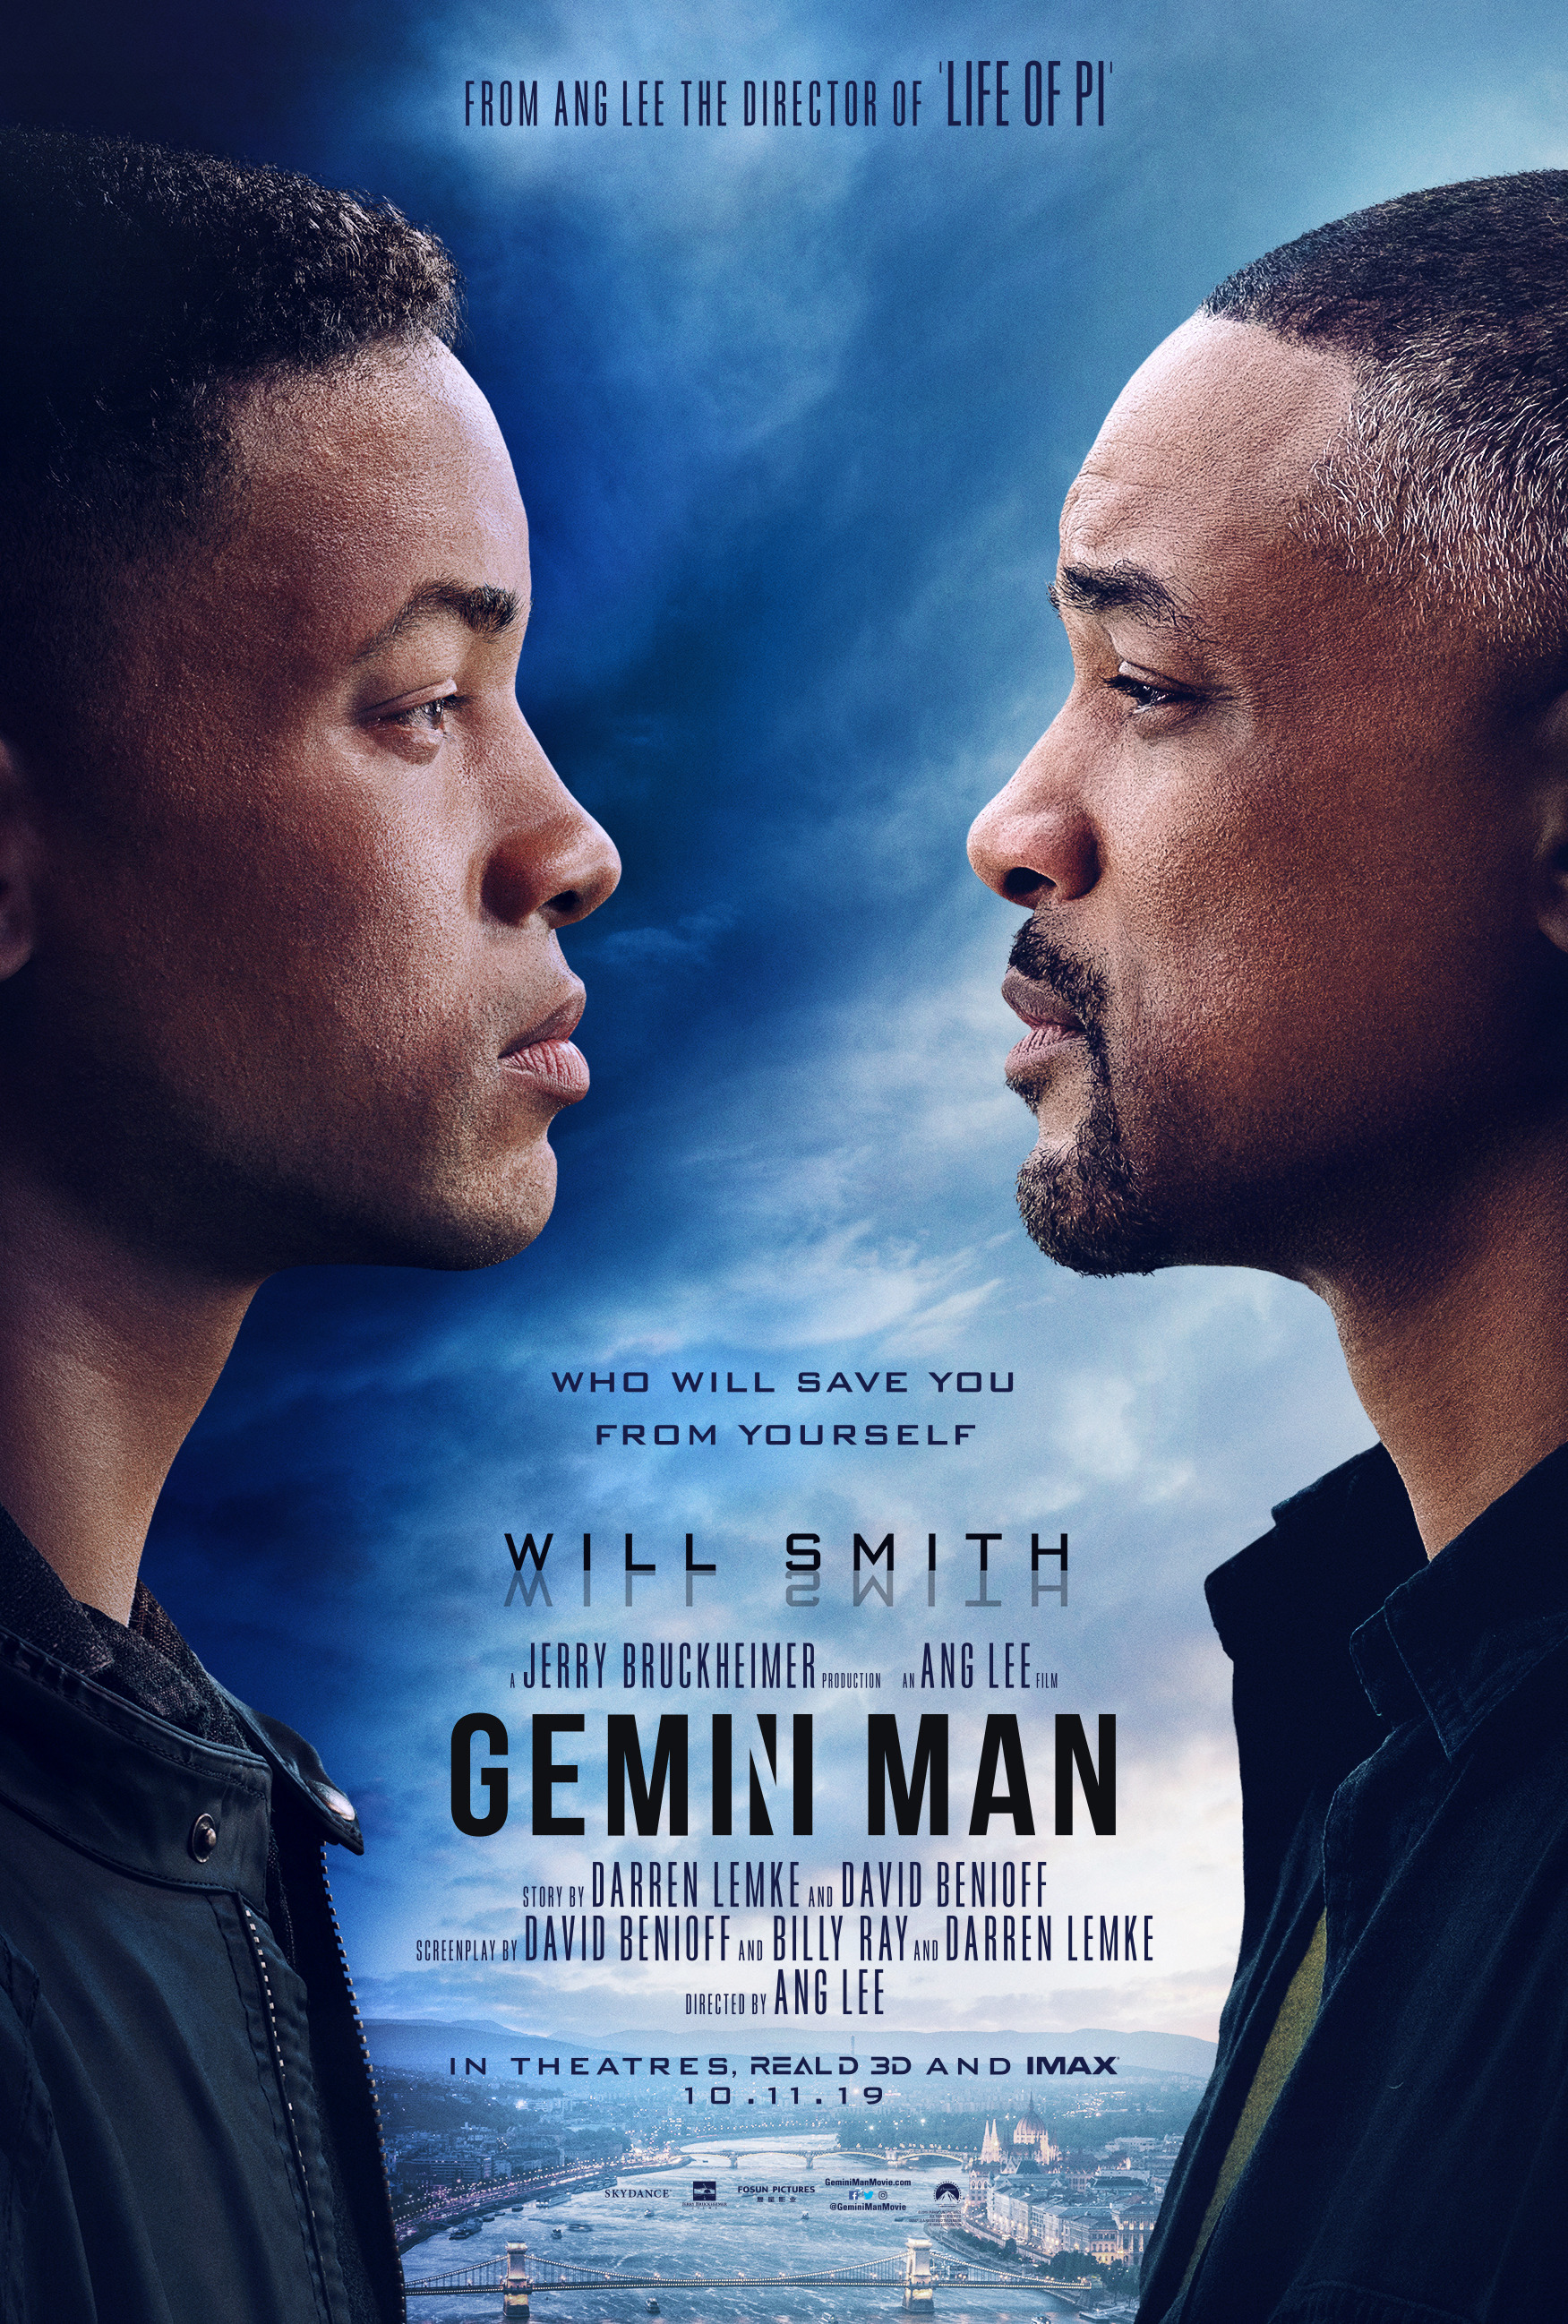 Gemini Man film review: Will Smith vs Will Smith as Ang Lee puts on a tech showcase